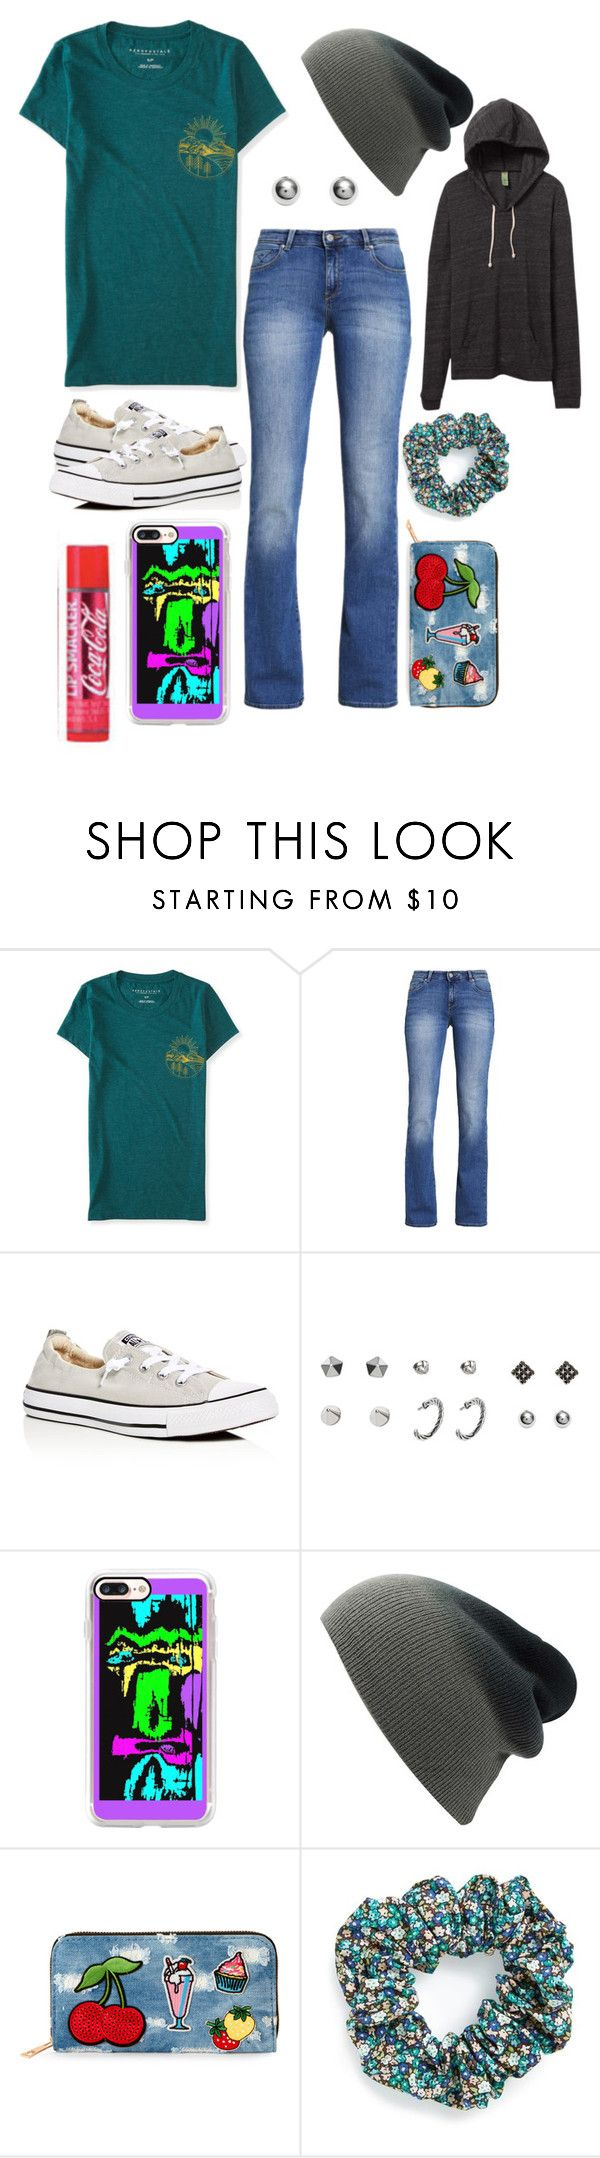 """""""Untitled #226"""" by skylovessave ❤ liked on Polyvore featuring Aéropostale, ESPRIT, Converse, Casetify, Viola and L. Erickson"""